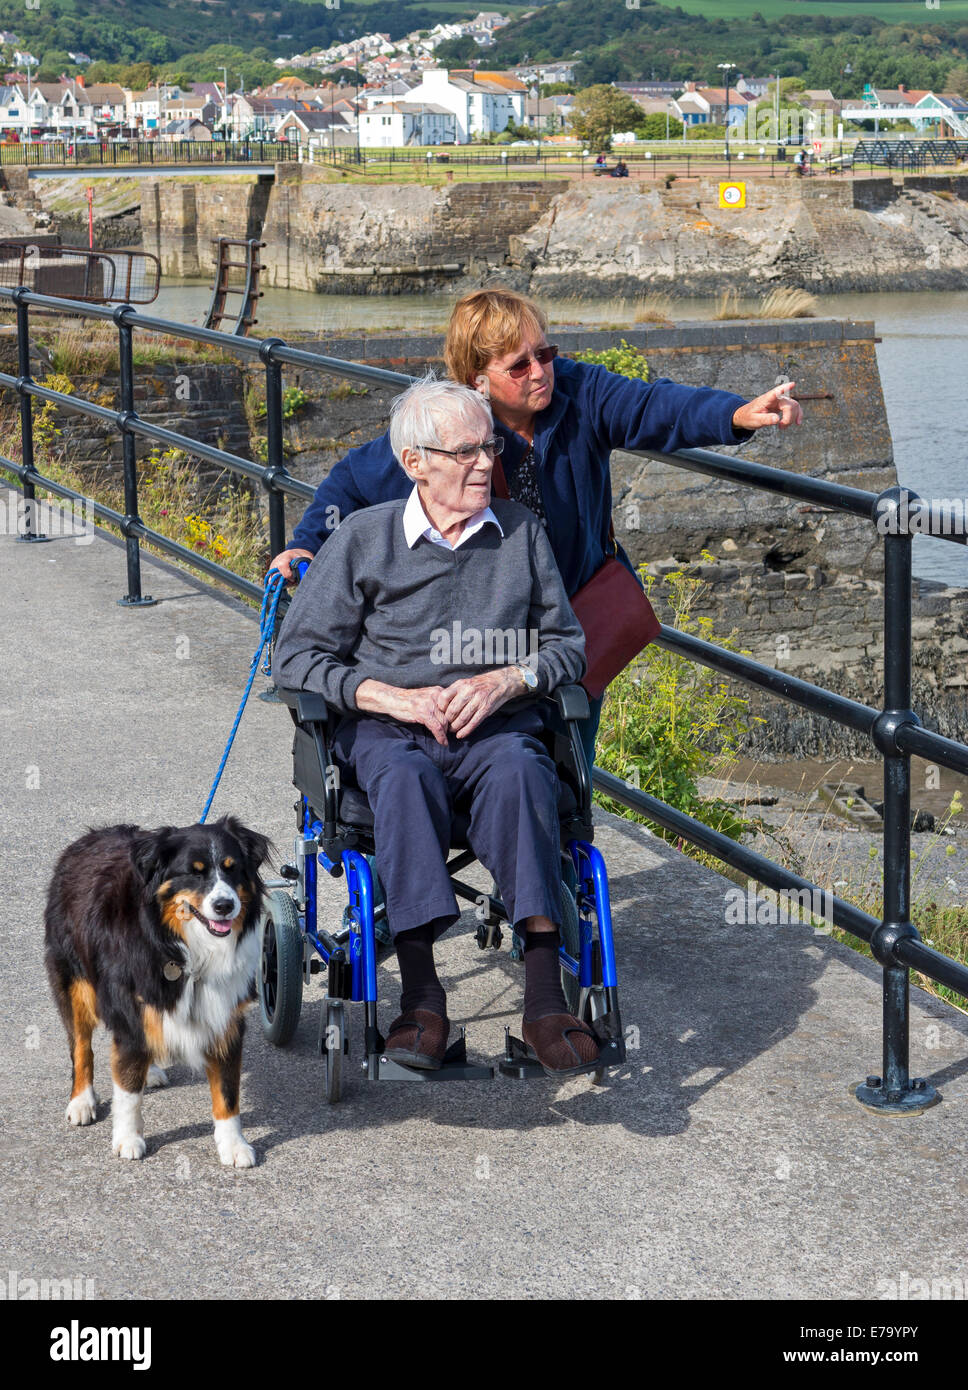 A daughter pointing out the sights of the harbour at Burry Port, Wales, to her elderly disabled father in a wheelchair - Stock Image